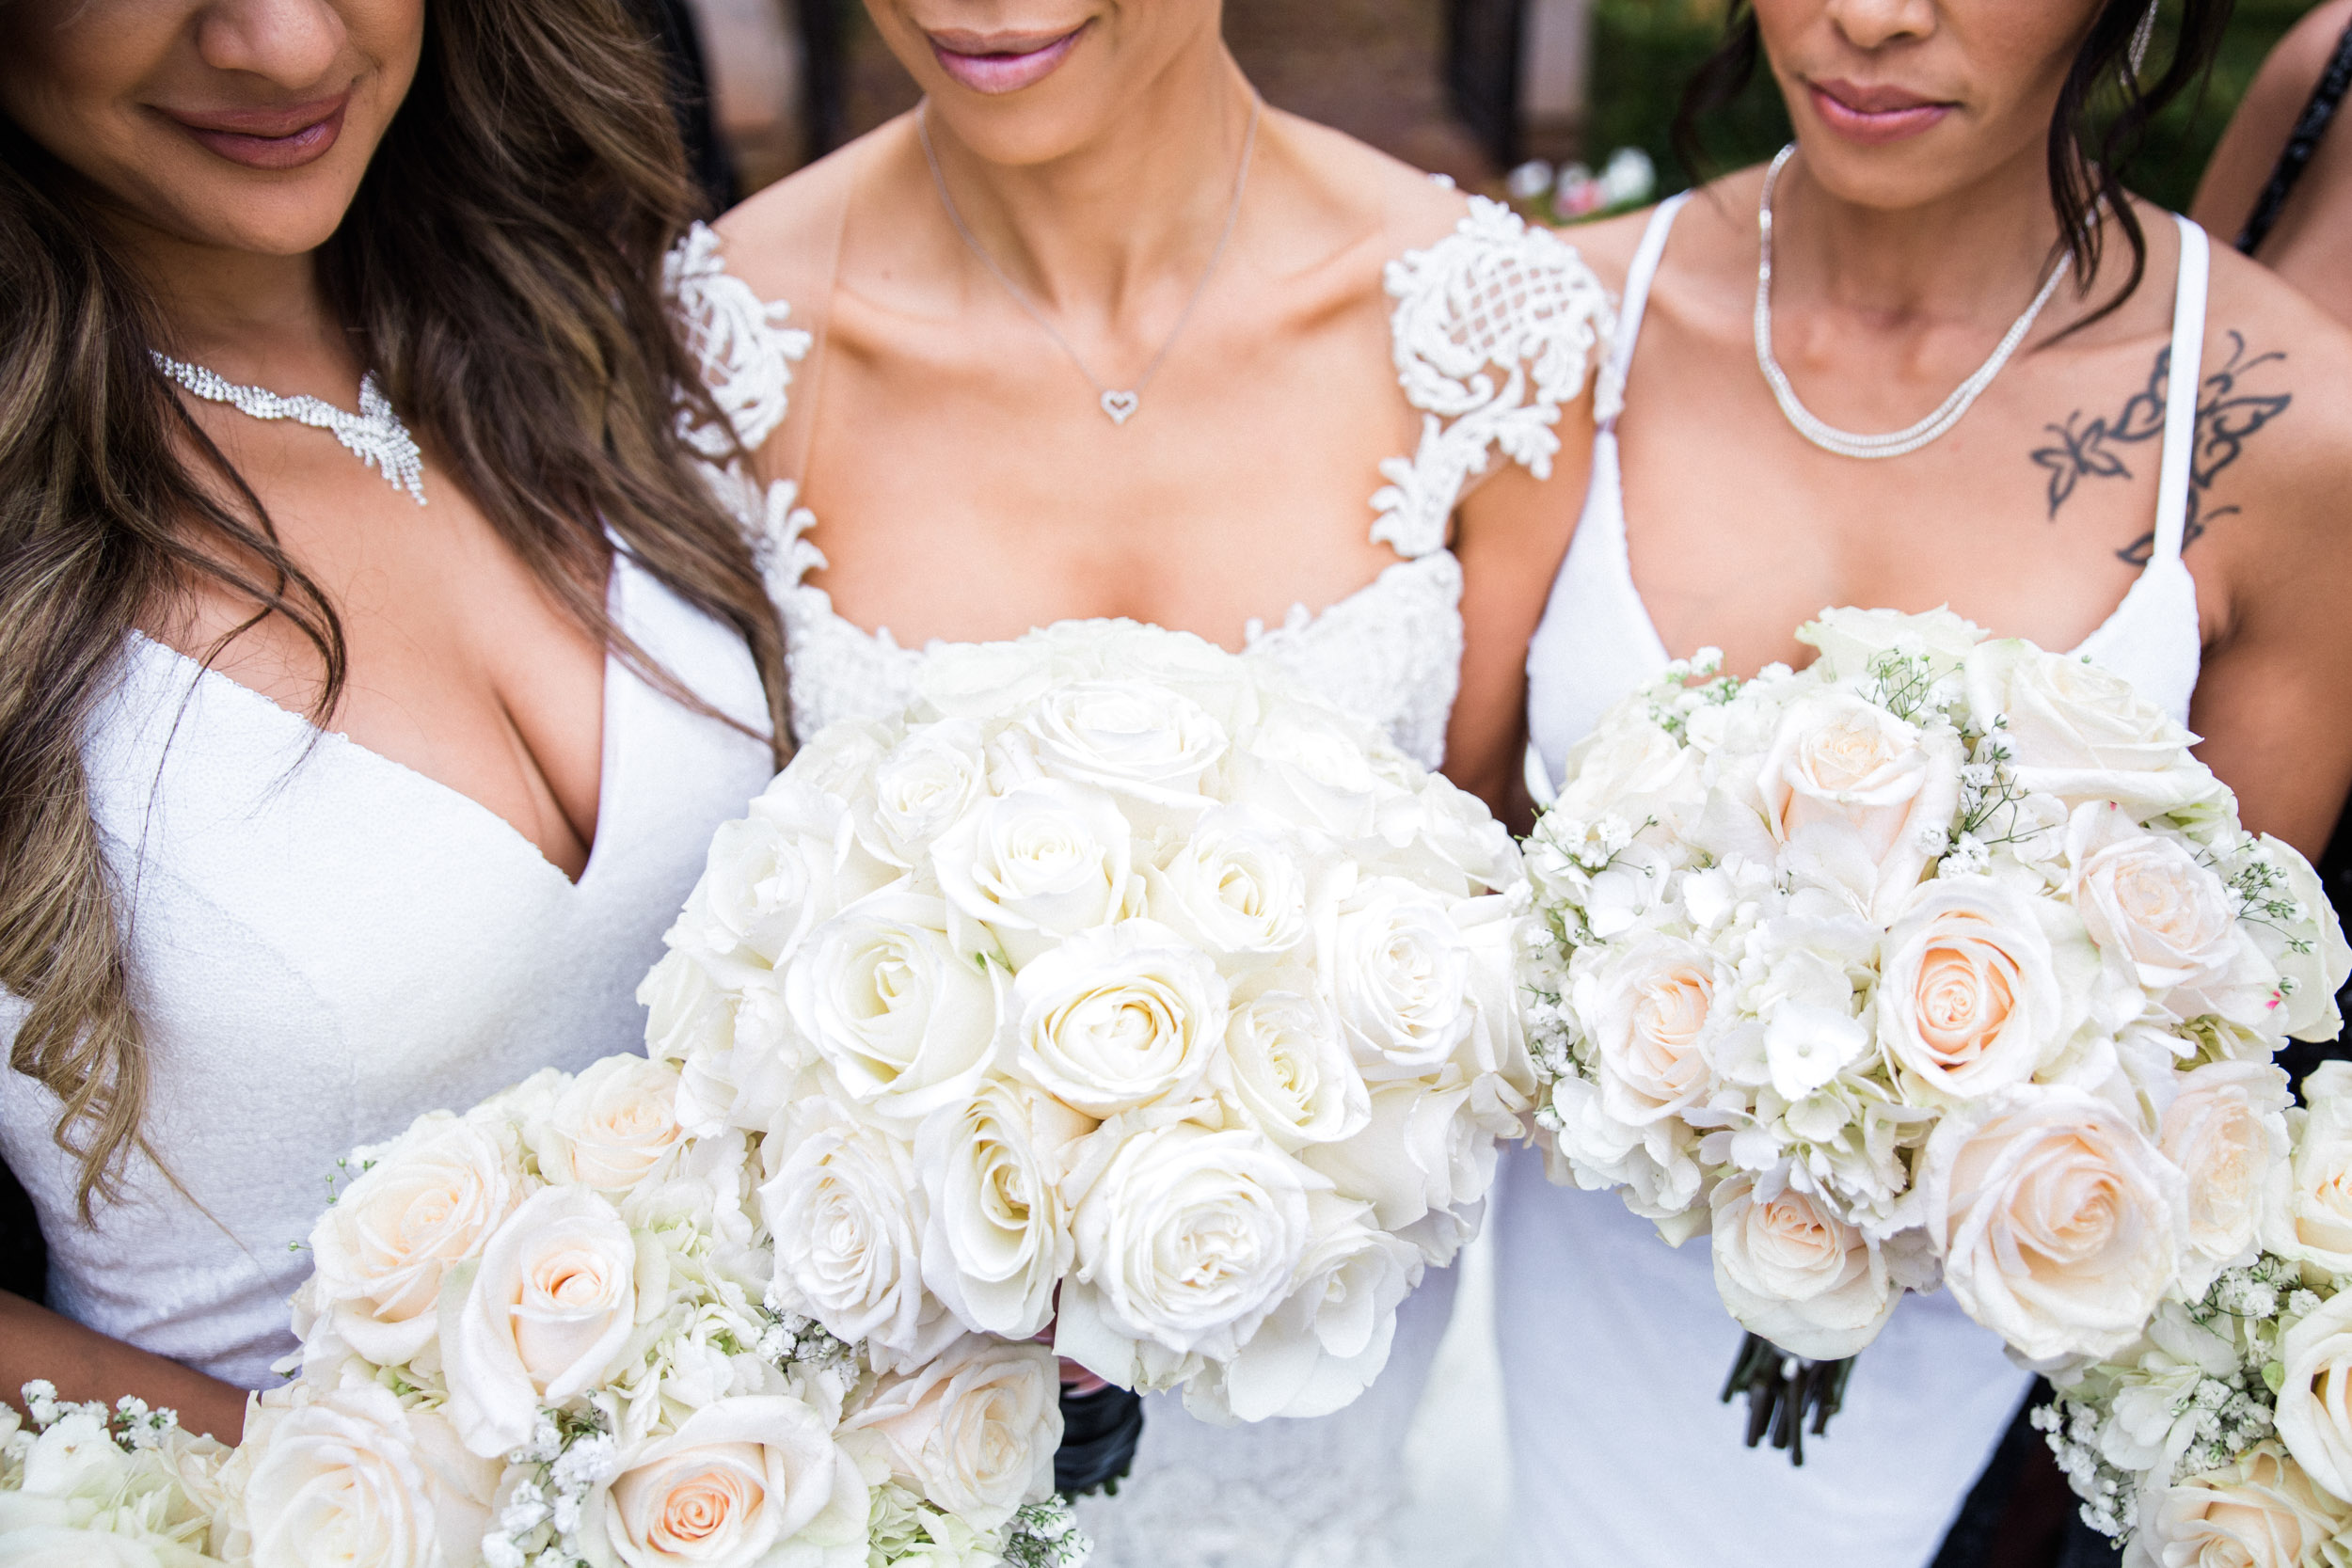 Villa siena bridesmaids wedding bouquet